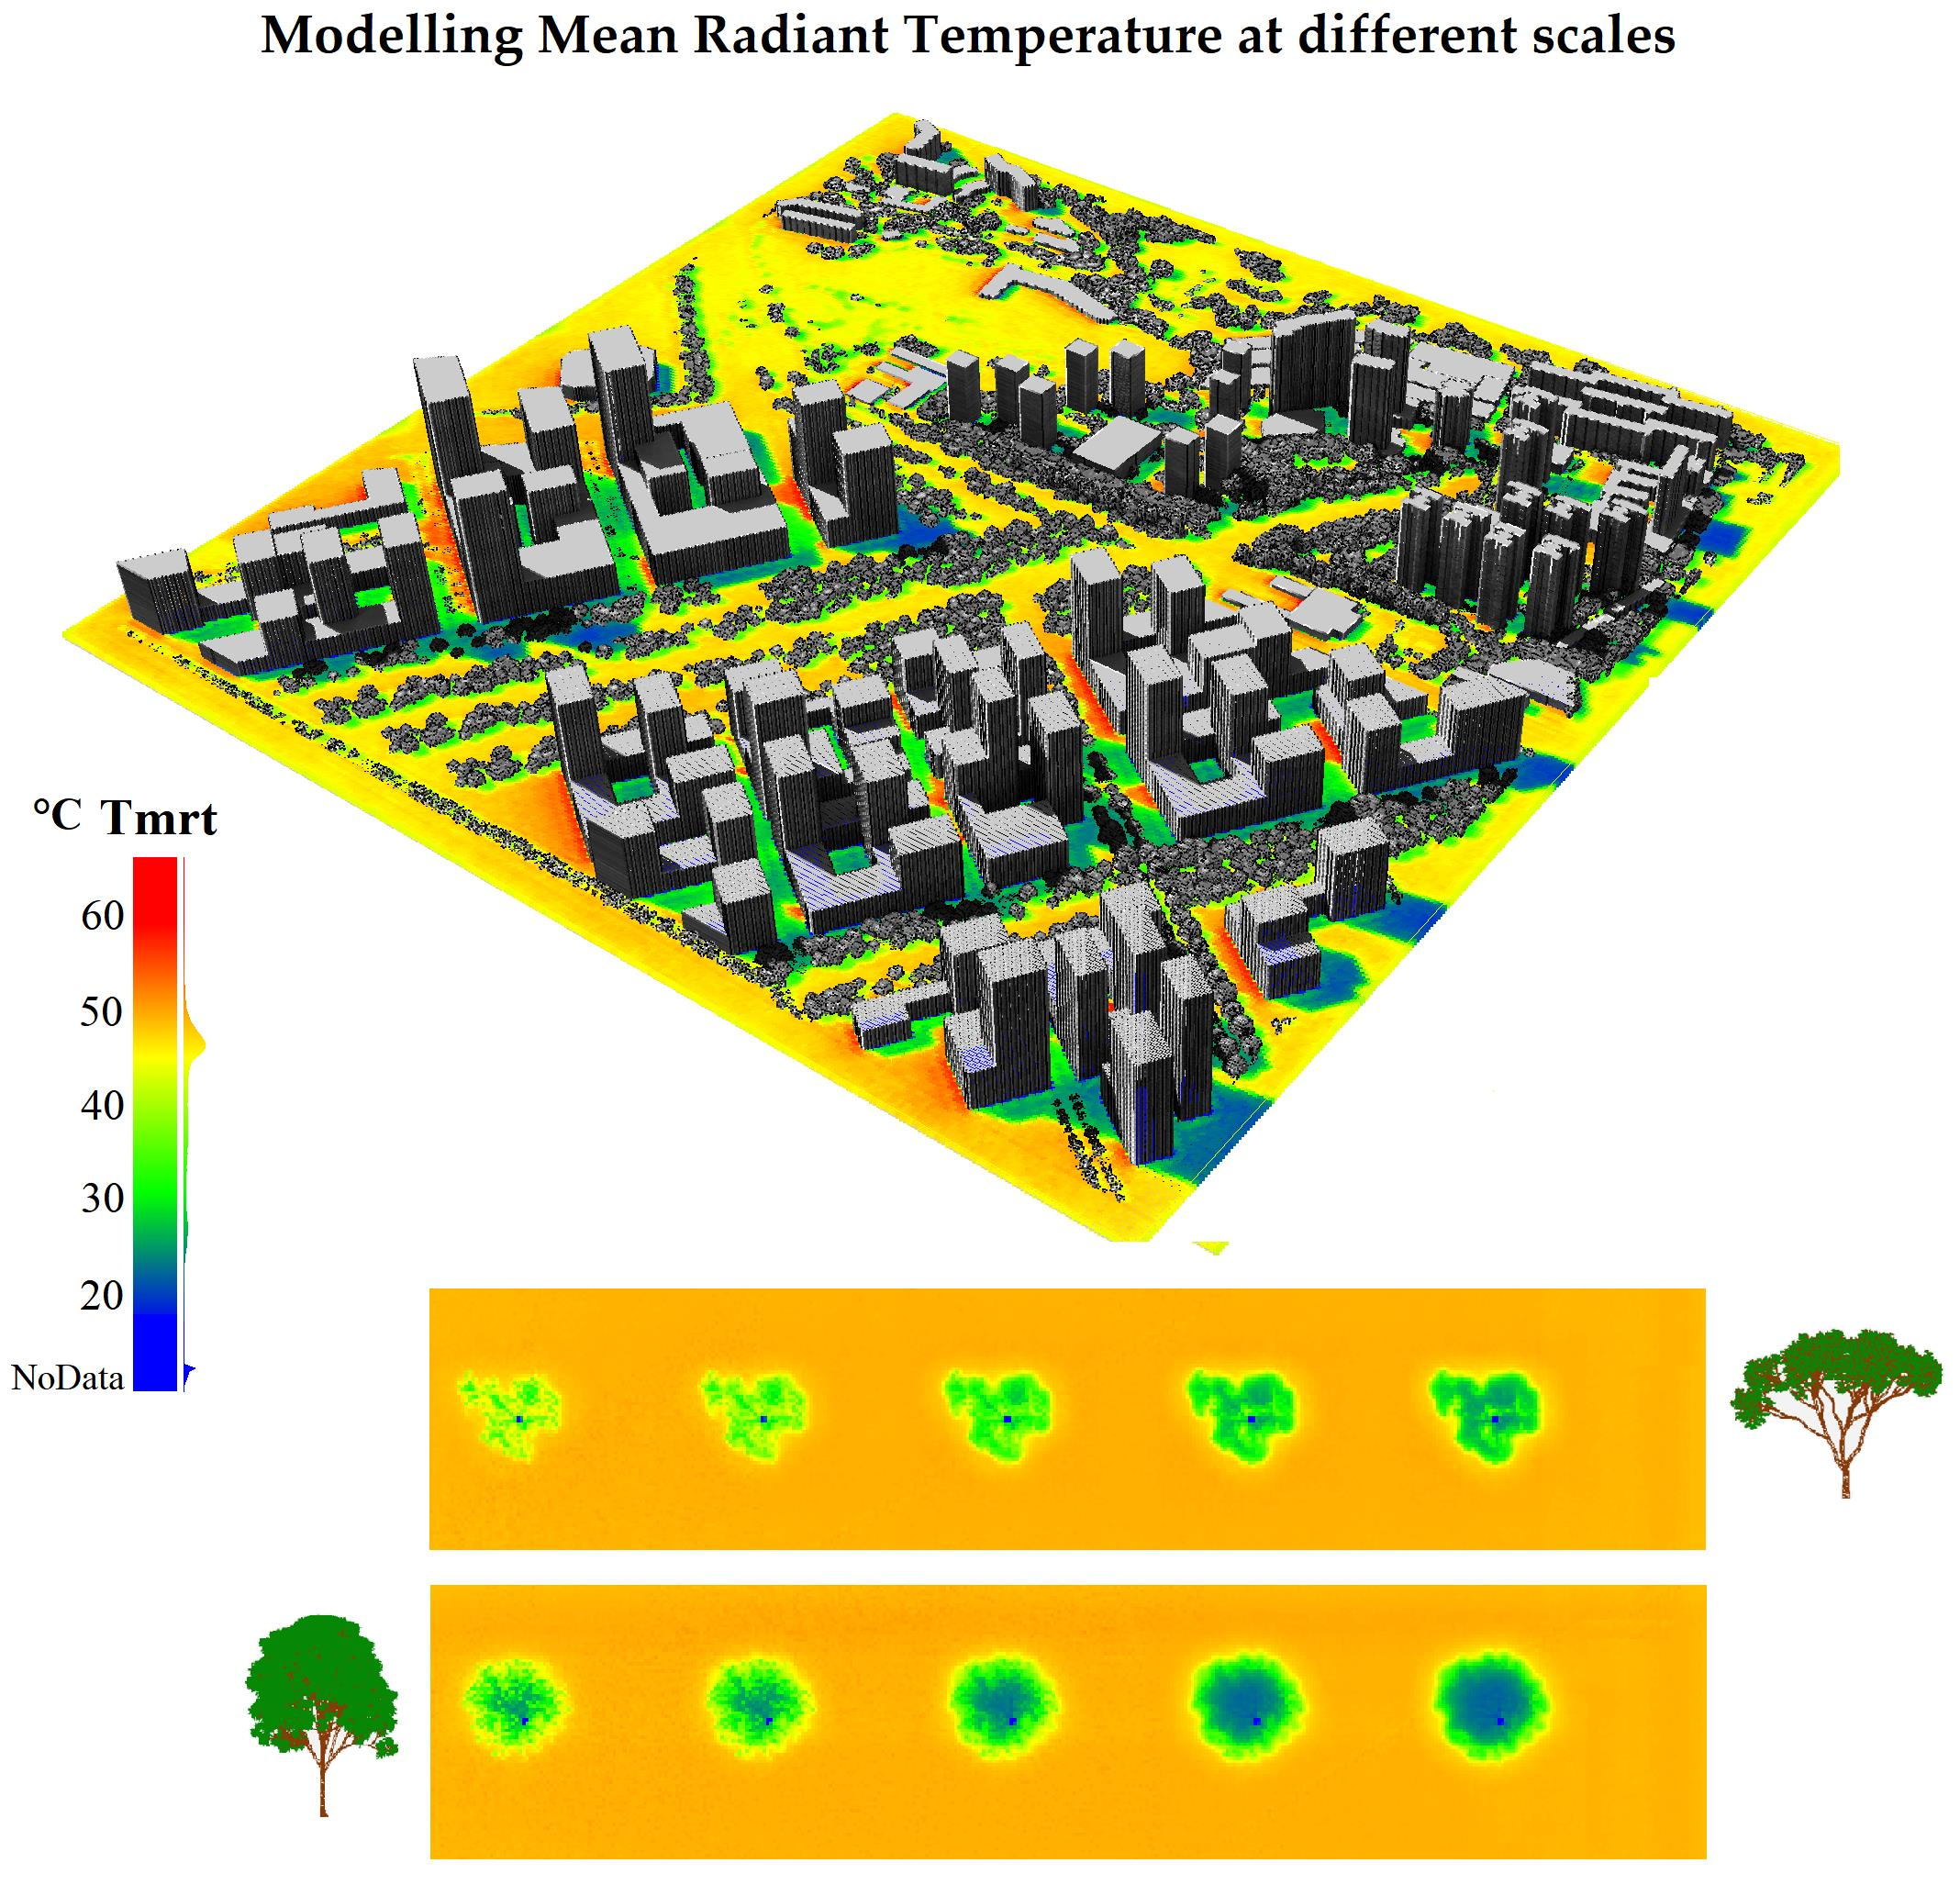 Graphic abstract that demonstrates the modeling mean radiant temperature at different scales